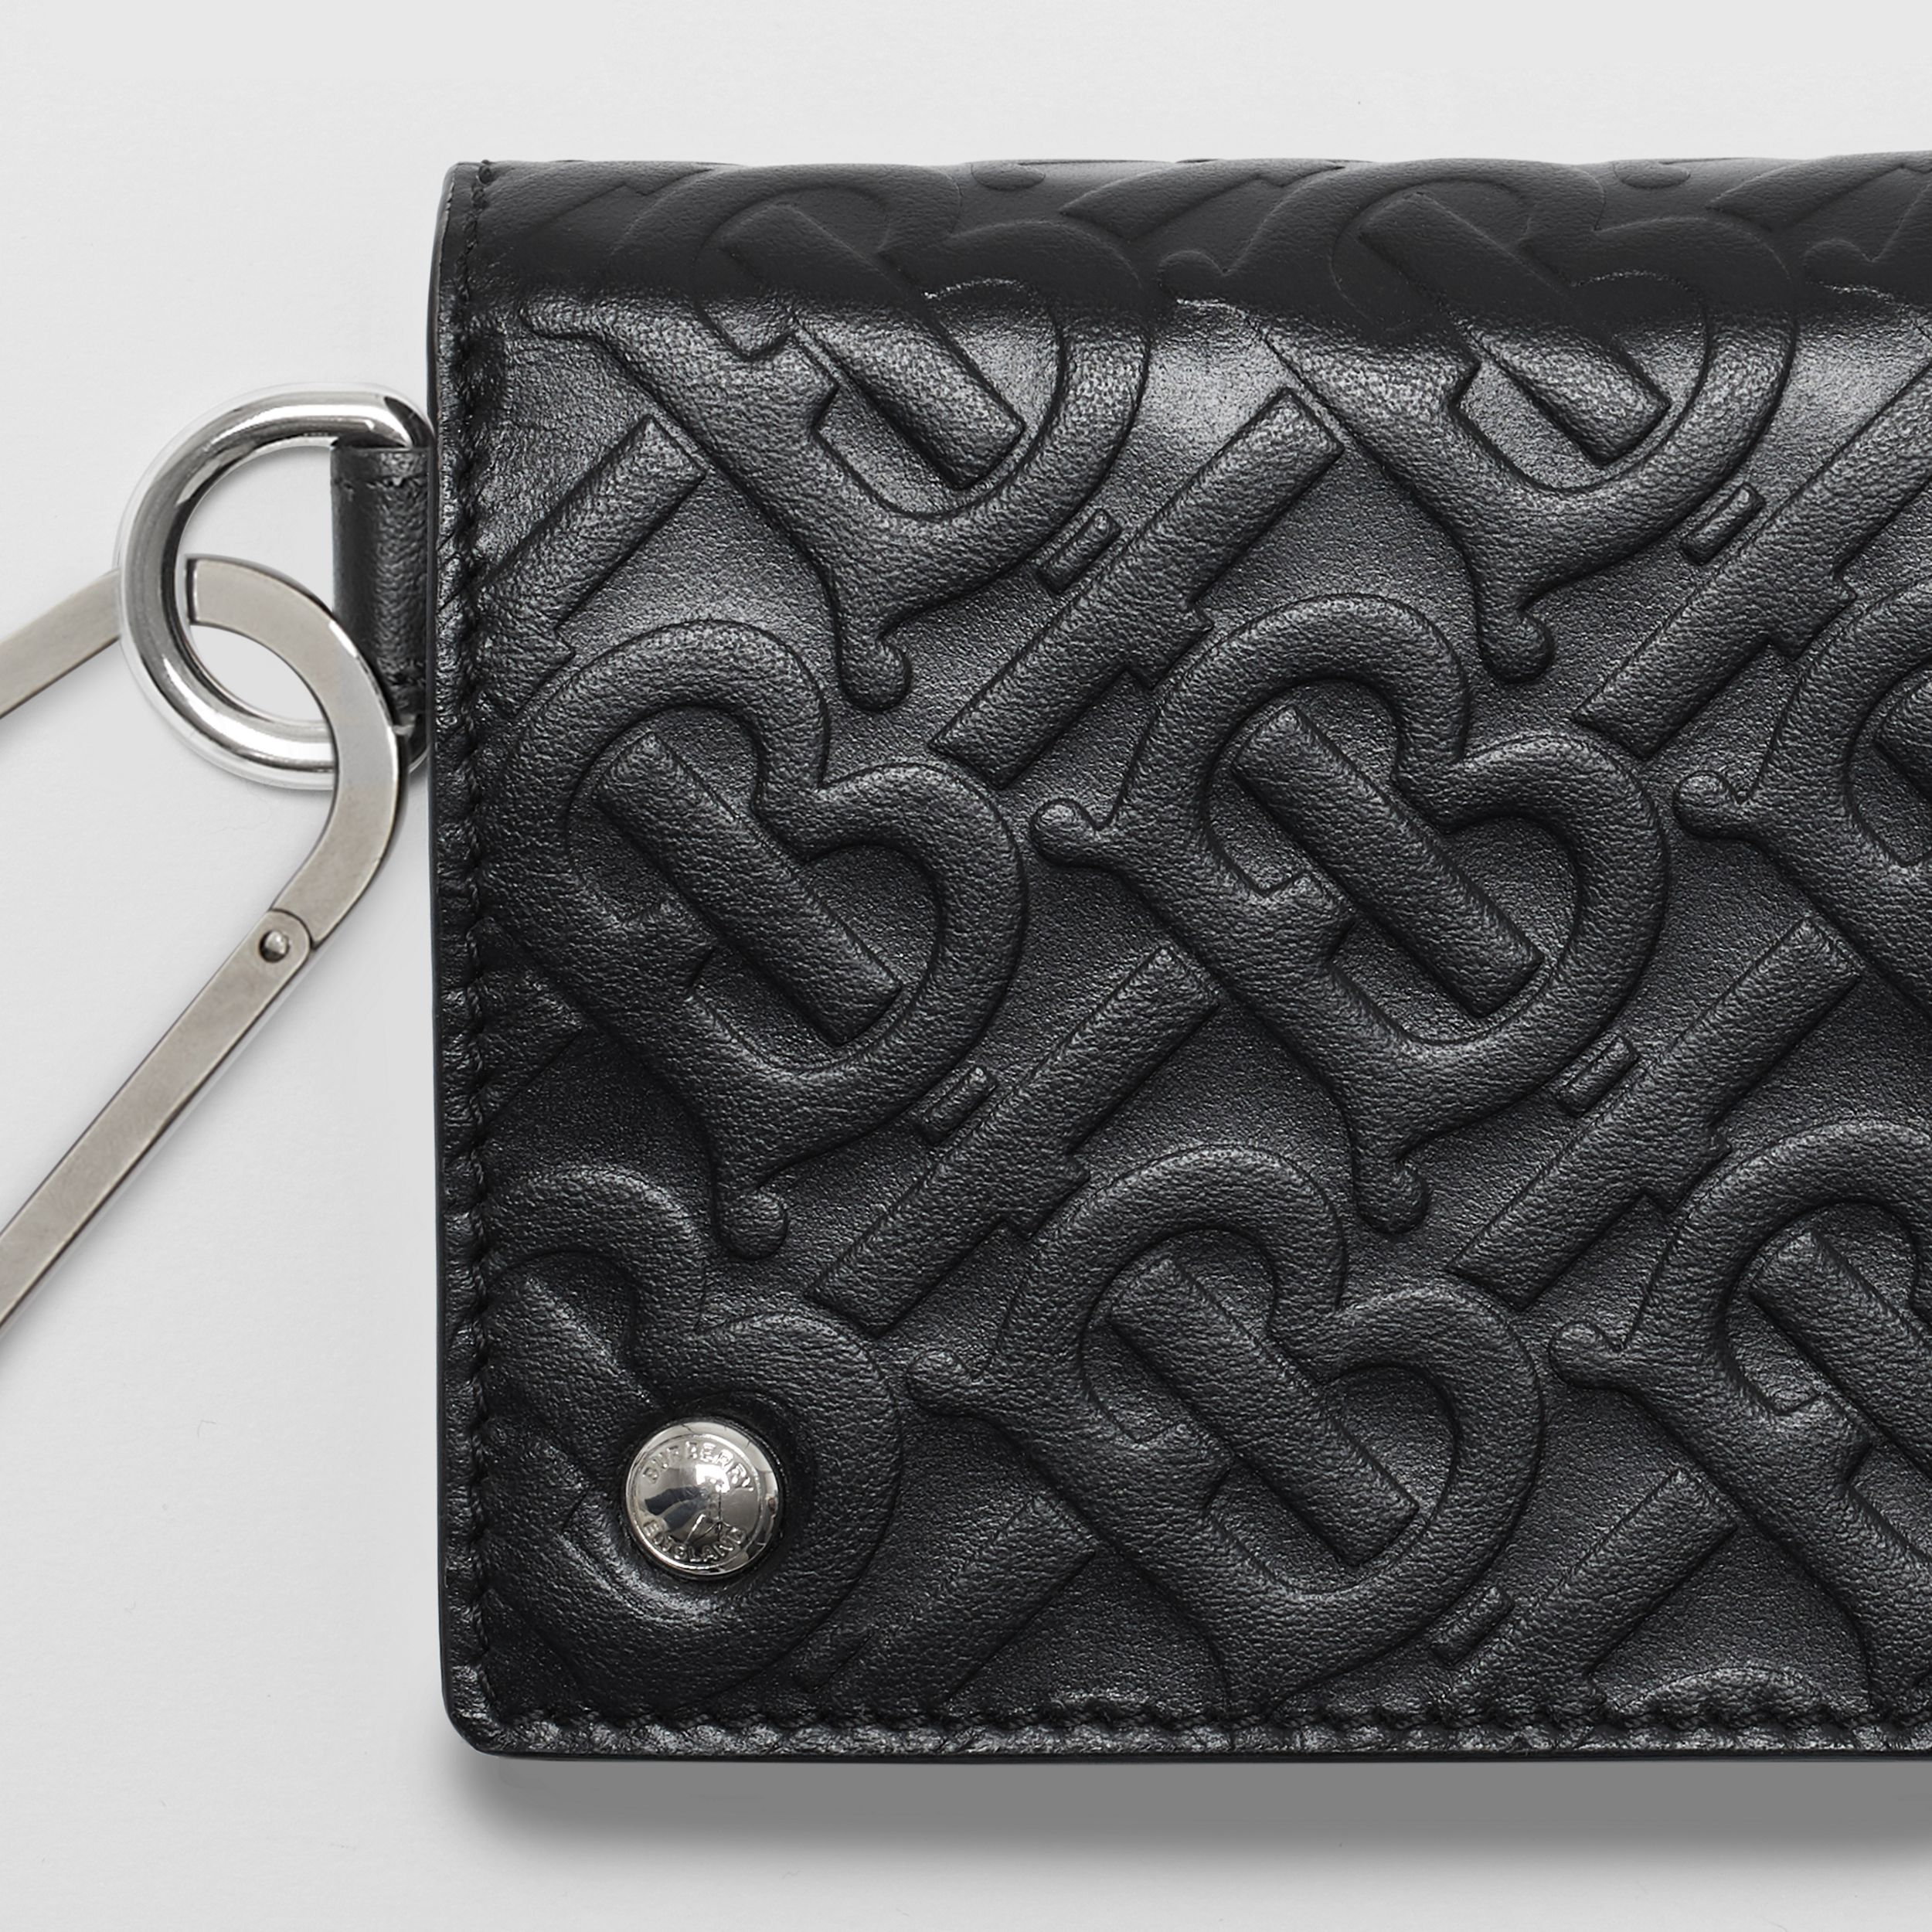 Monogram Embossed Leather Trifold Wallet in Black | Burberry - 2